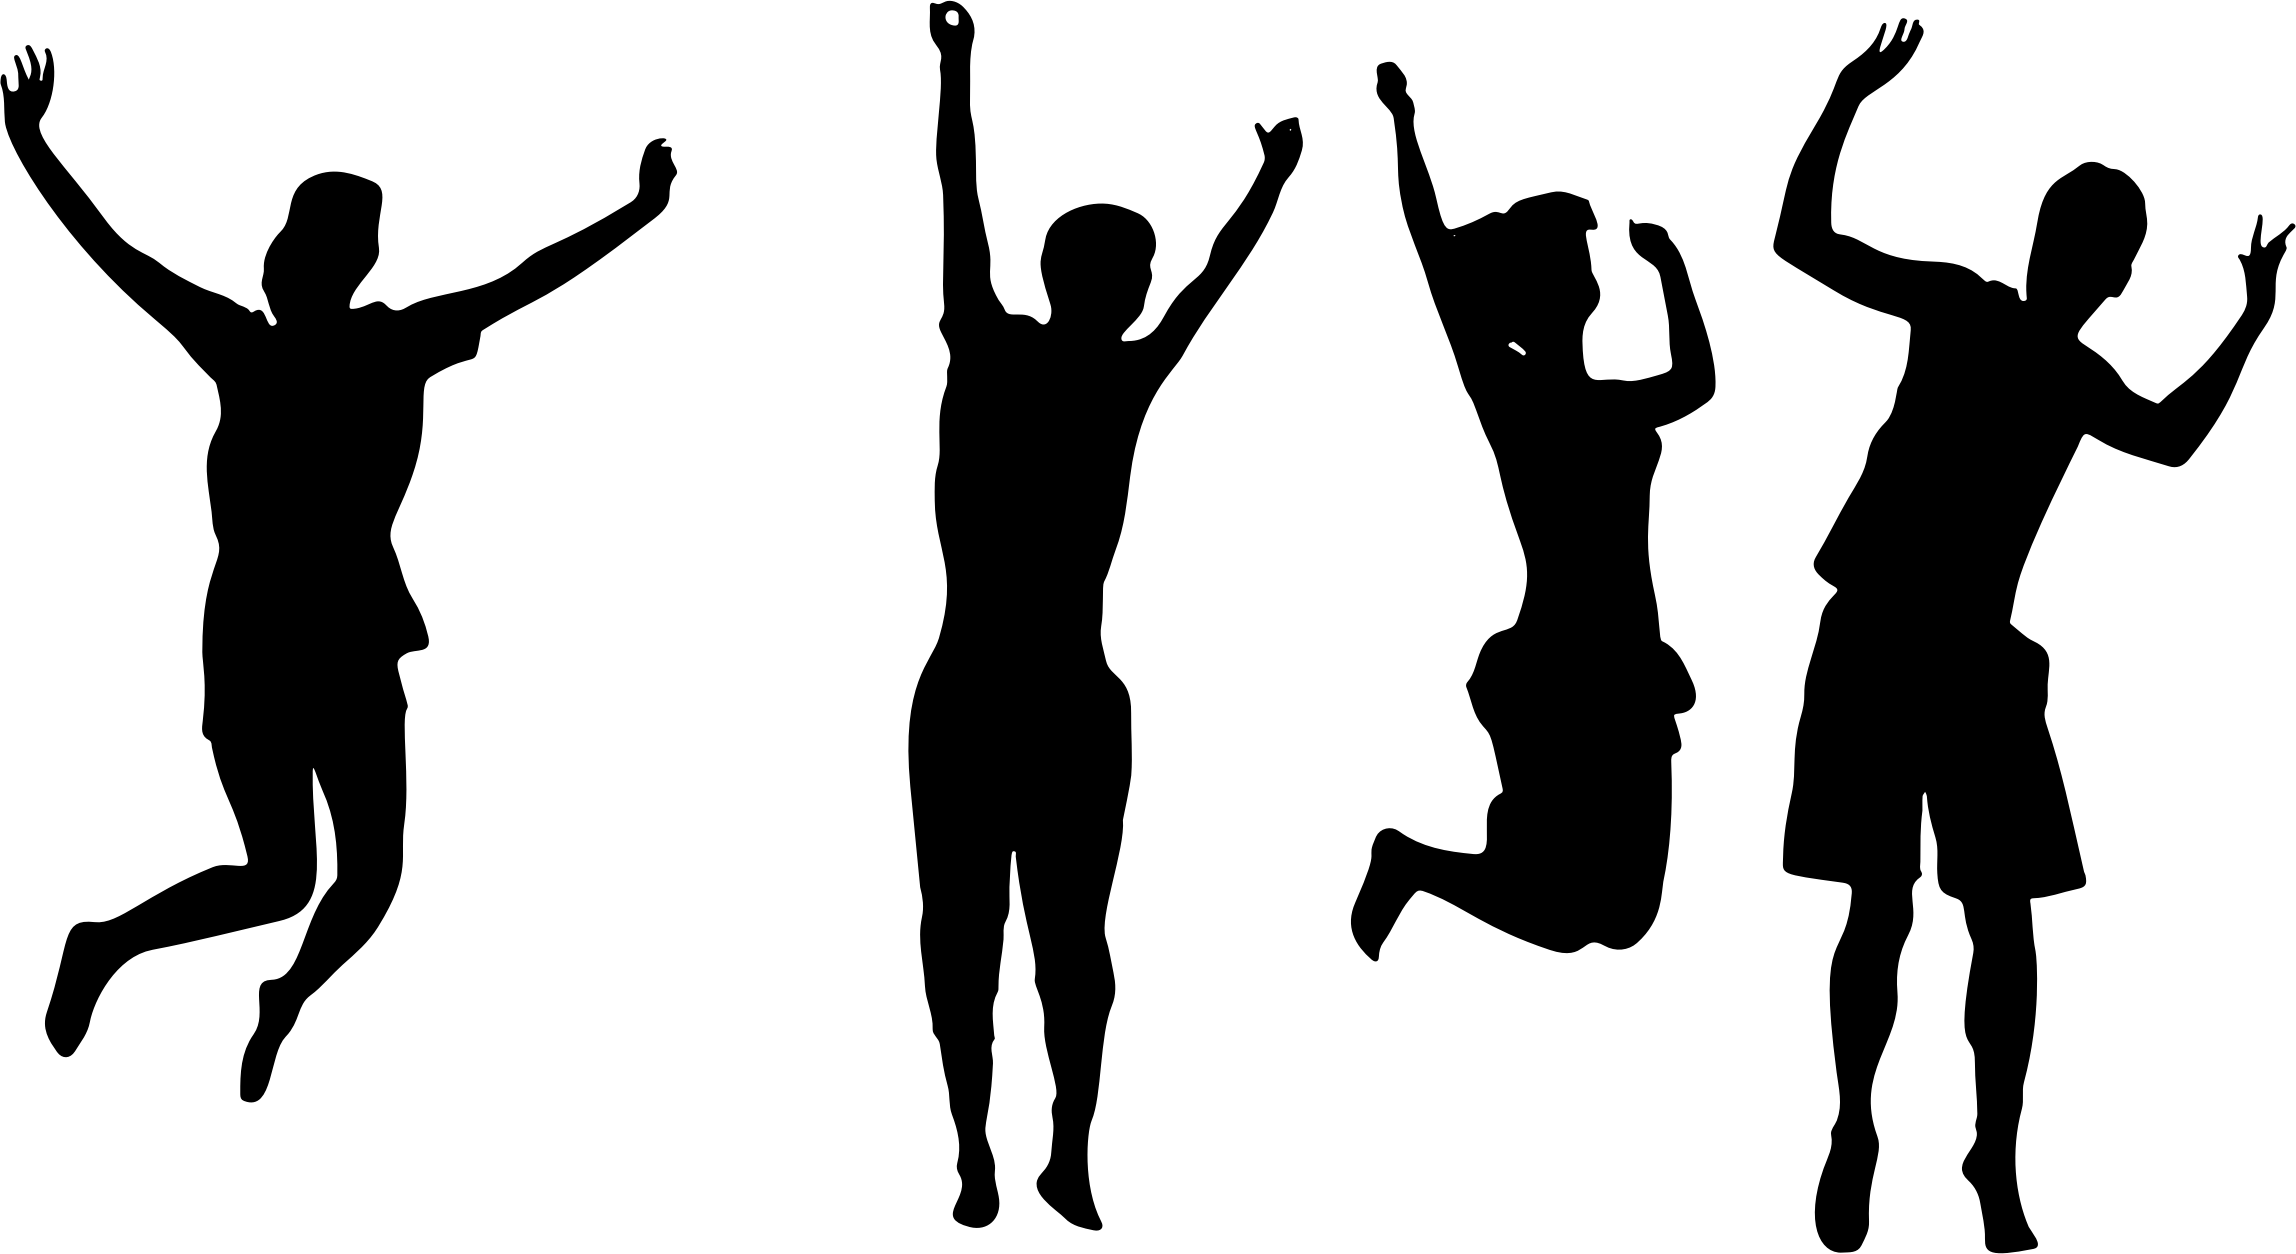 Jumping Clipart Fun Boy Jumping Fun Boy Transparent Free